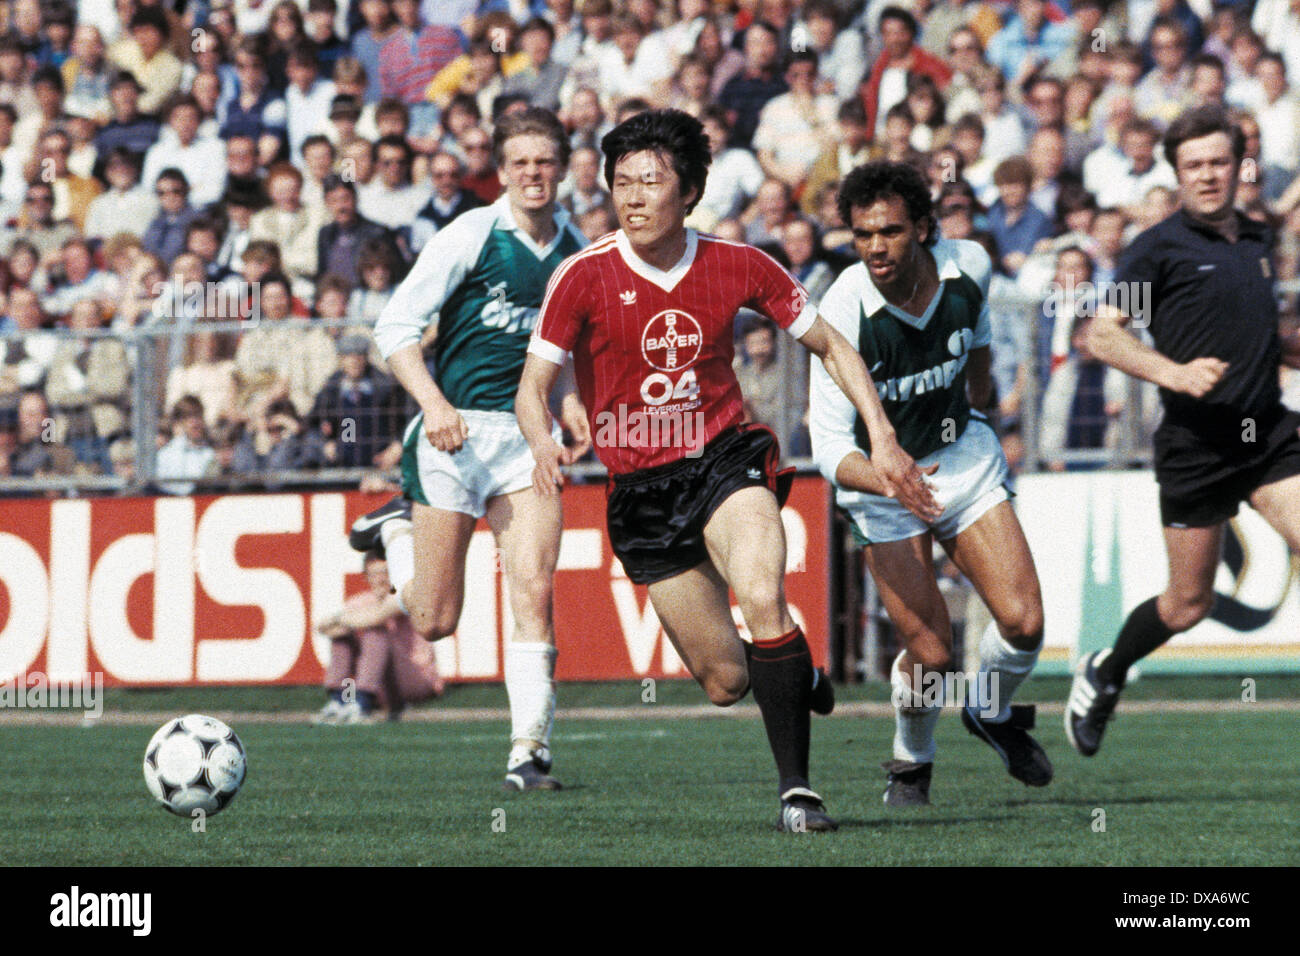 football, Bundesliga, 1983/1984, Ulrich Haberland Stadium, Bayer 04 Leverkusen versus SV Werder Bremen 0:0, scene of the match, f.l.t.r. Wolfgang Sidka (Werder), Bum-Kun Cha (Bayer) in ball possession, Rigobert Gruber (Werder), referee Heinz Werner - Stock Image